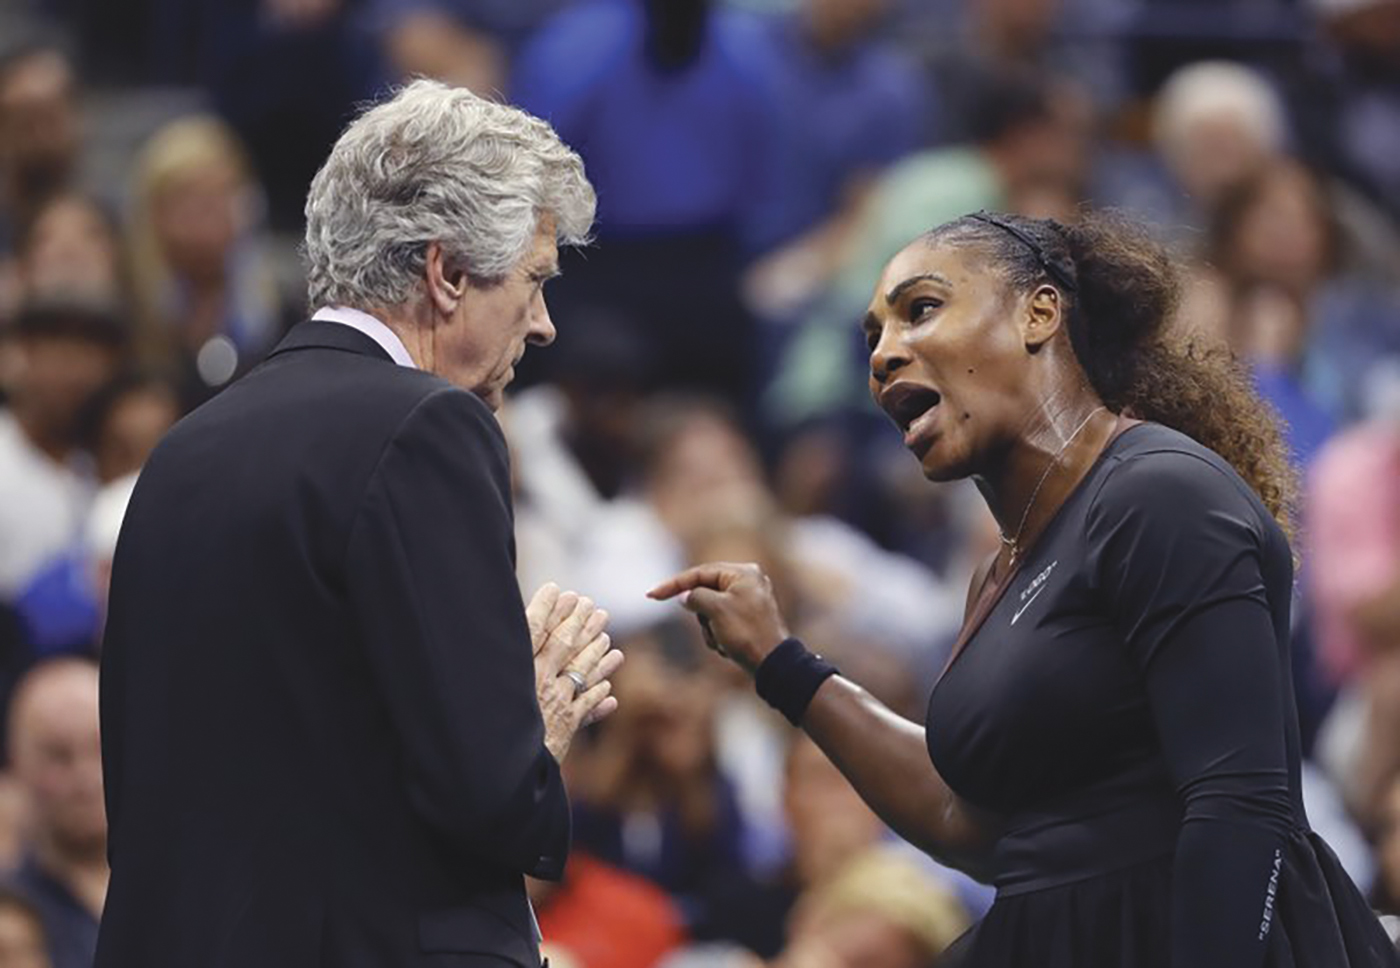 Serena Williams hugs Naomi Osaka, of Japan, after Osaka defeated Williams in the women's final of the U.S. Open tennis tournament, Saturday, Sept. 8, 2018, in New York. (AP Photo/Andres Kudacki)